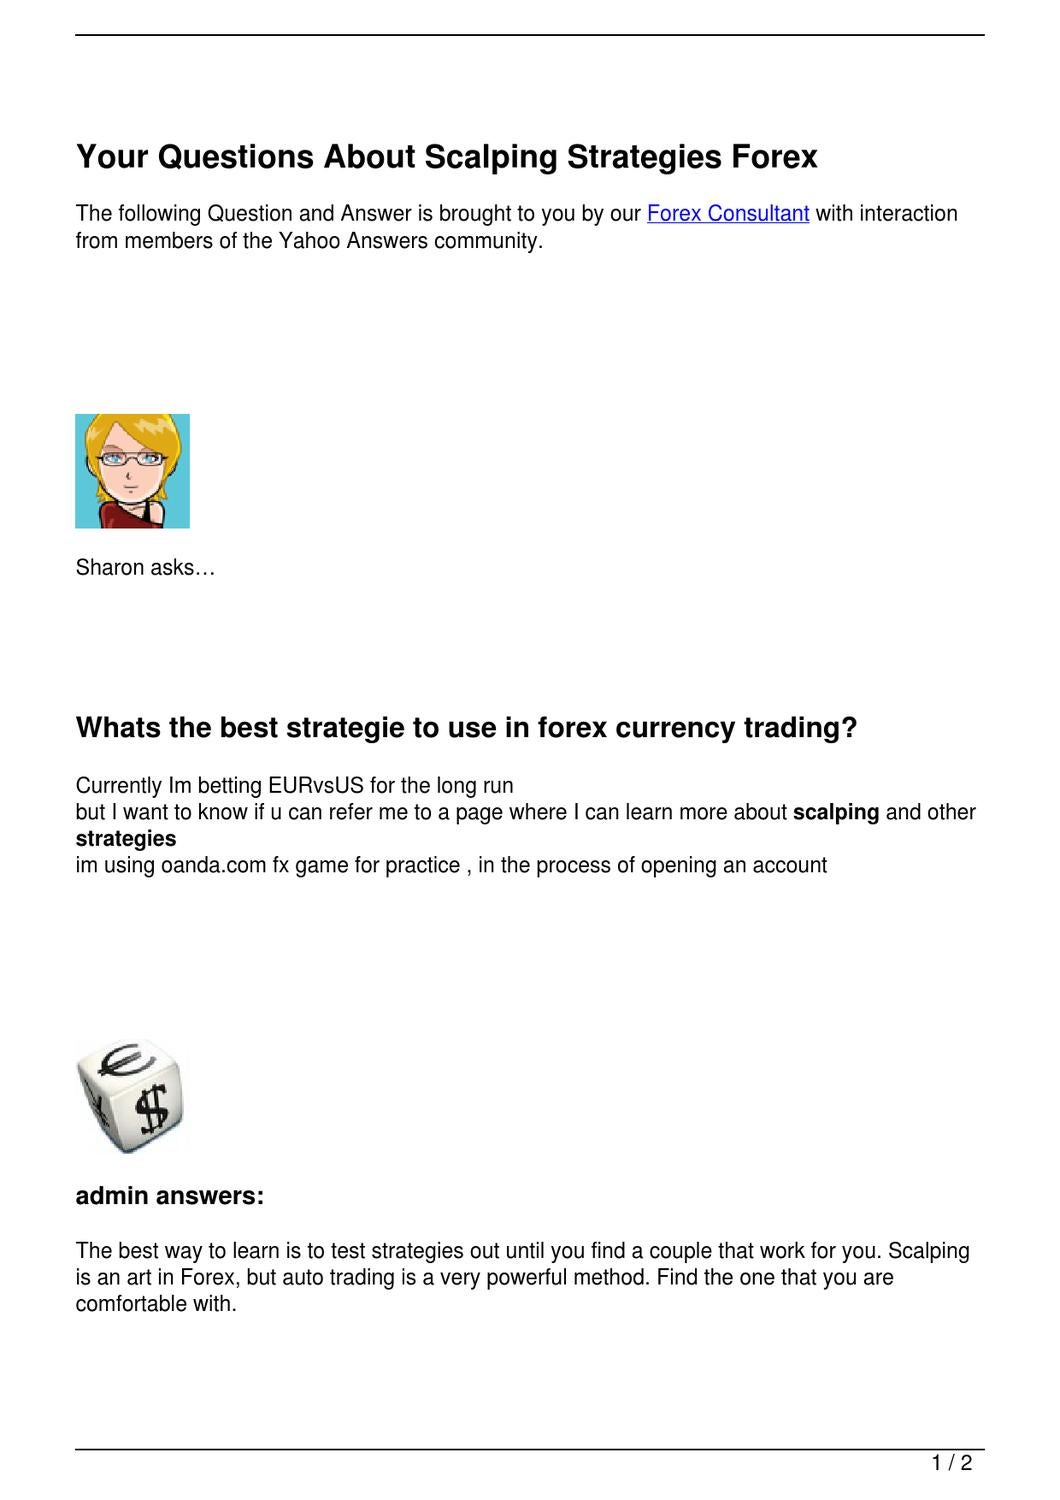 Your Questions About Scalping Strategies Forex by Brad Smith